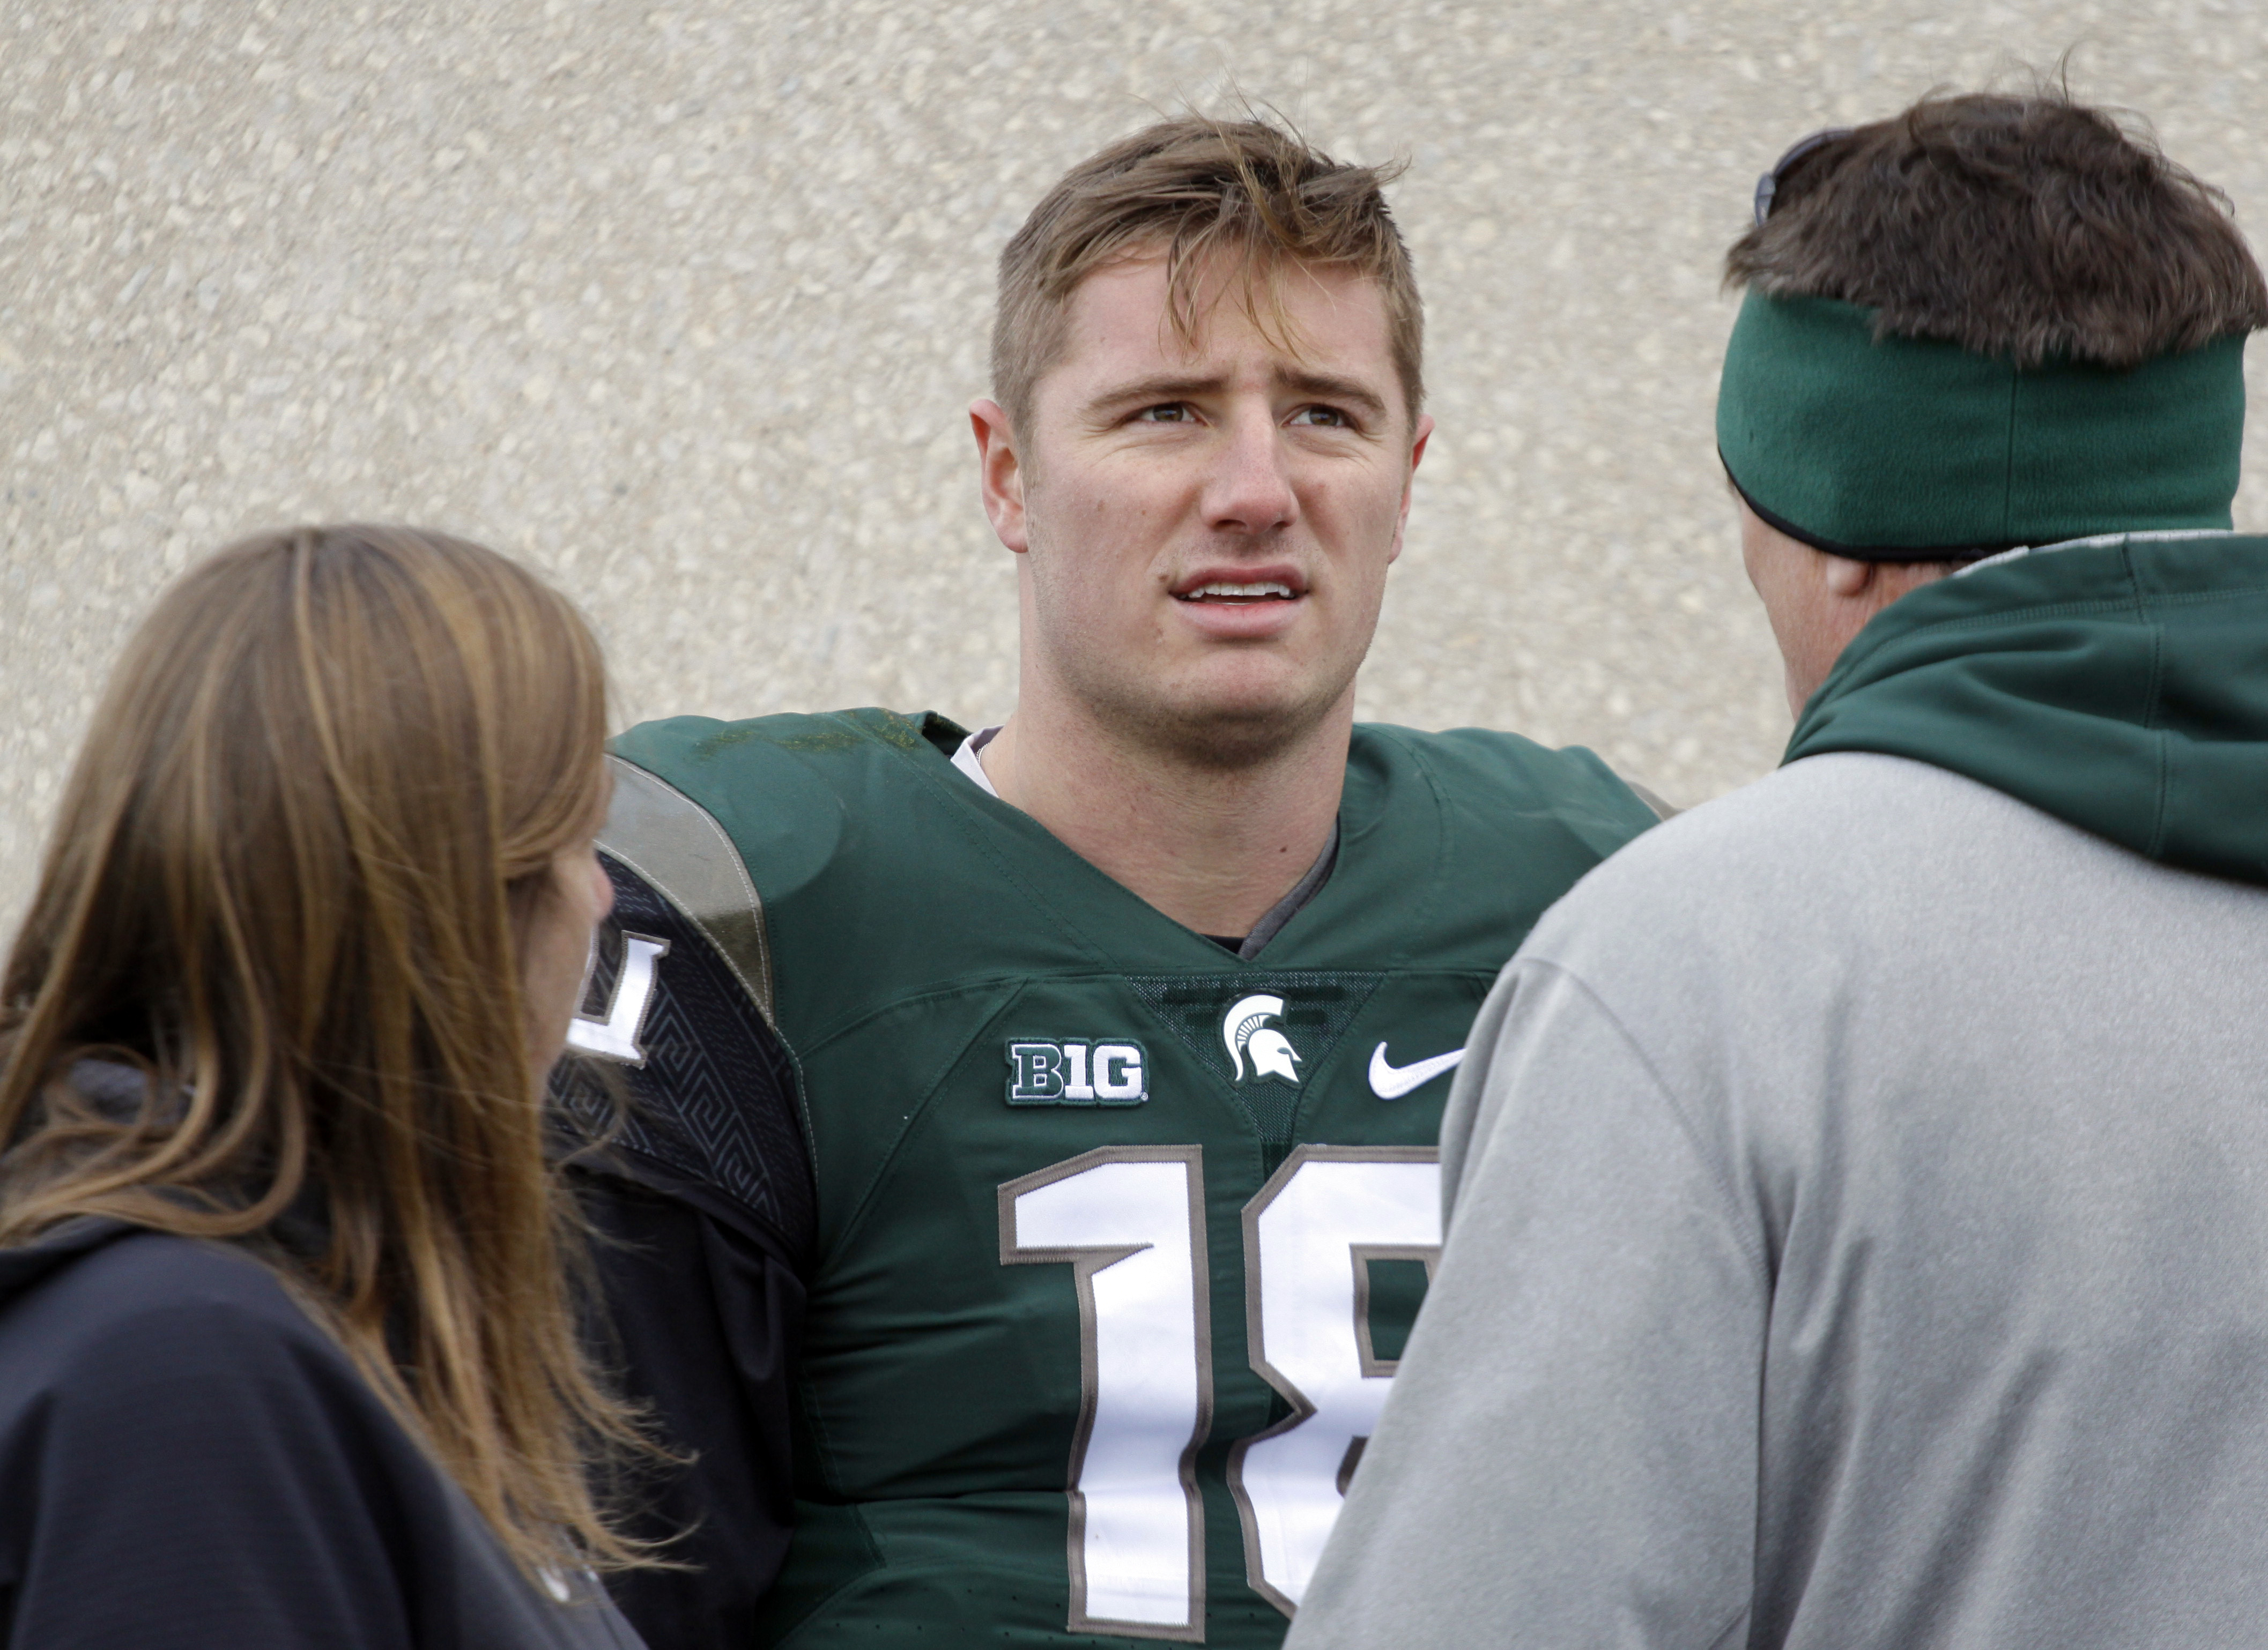 Michigan State quarterback Connor Cook, center, talks with team trainer Sally Nogle, left, and his father, Chris Cook, right, following an NCAA college football game against Maryland, Saturday, Nov. 14, 2015, in East Lansing, Mich. Michigan State won 24-7